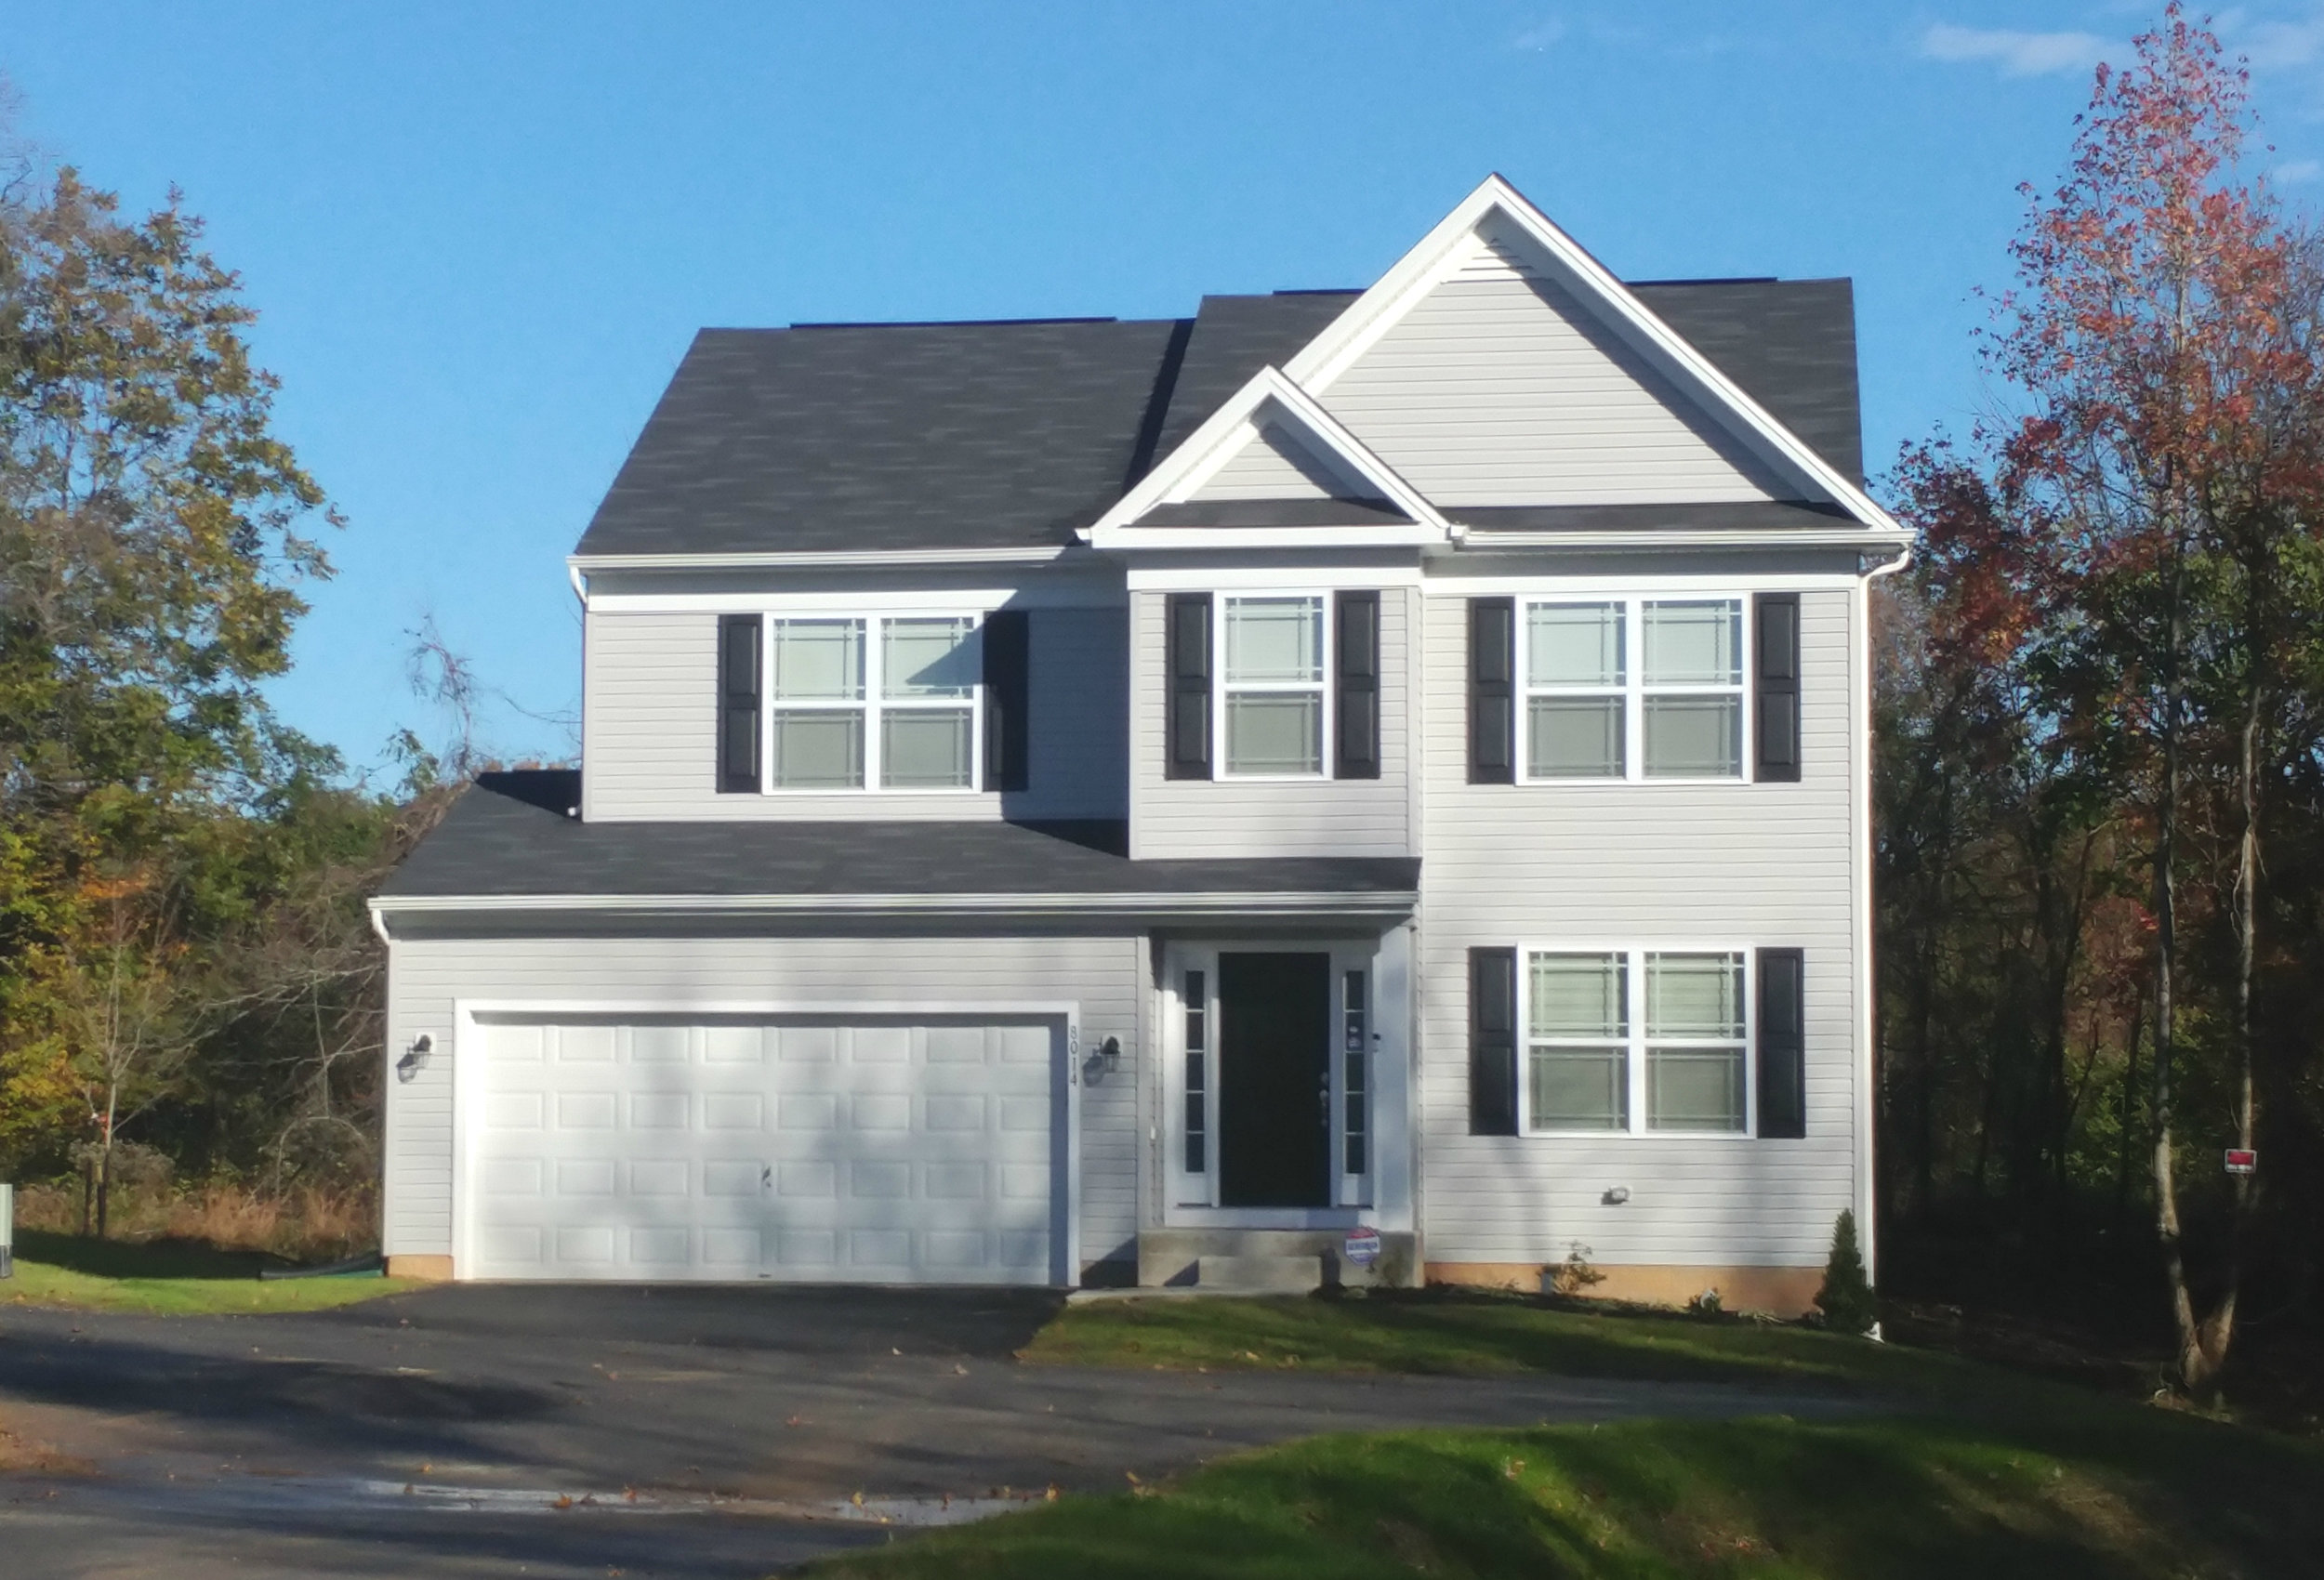 This new Harmony Builders home in Jessup, Maryland, was recently purchased by clients of Jerry Kline, realtor, Keller Williams Flagship of Maryland.